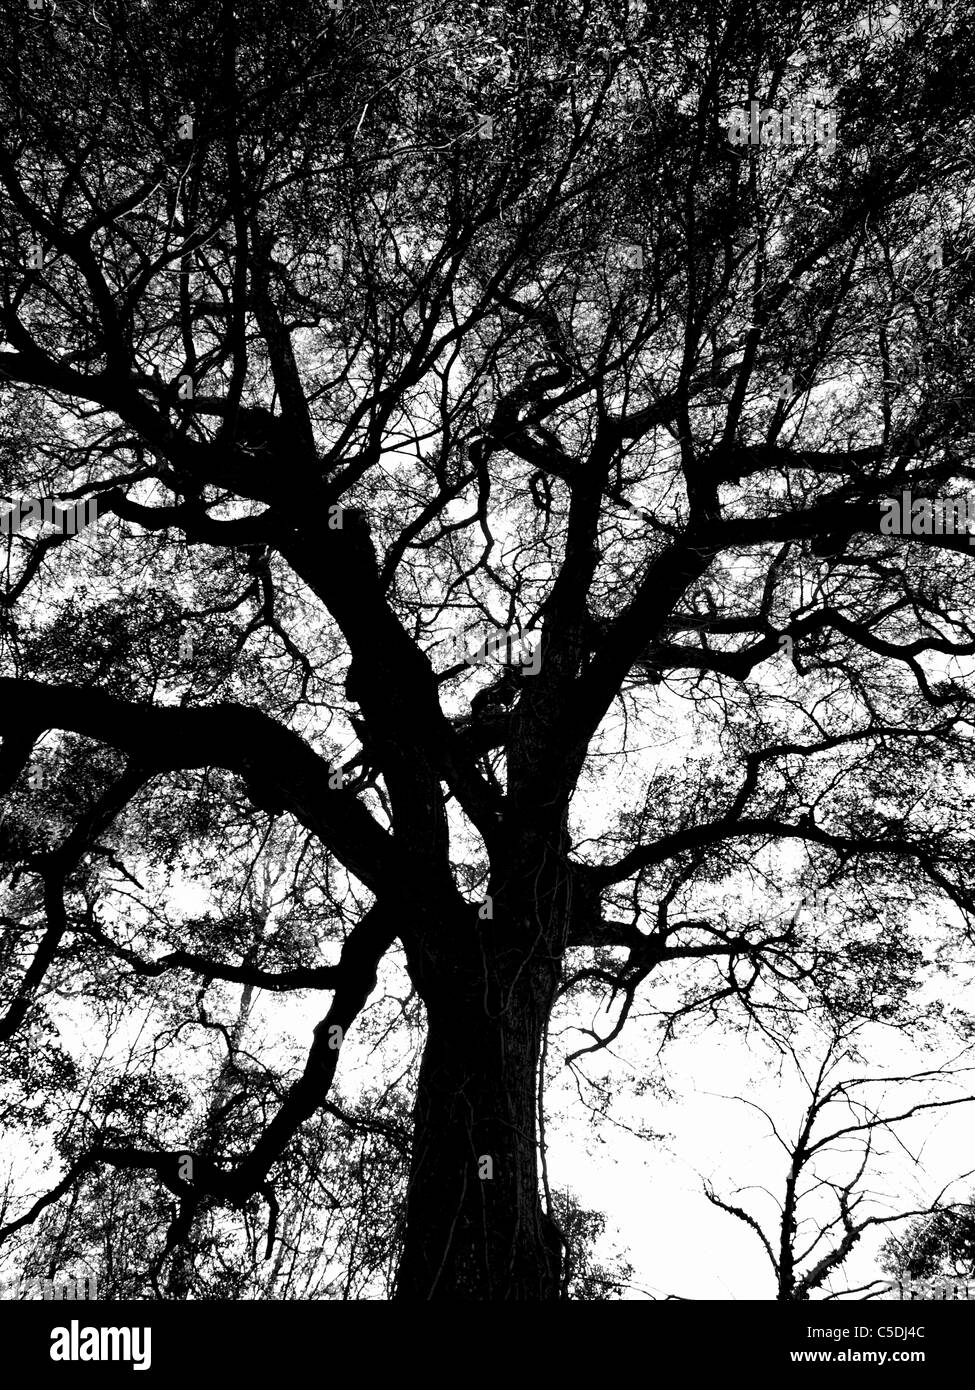 tree trees forest sky view bark trunk leaves silhouette contrast limbs oak pine - Stock Image